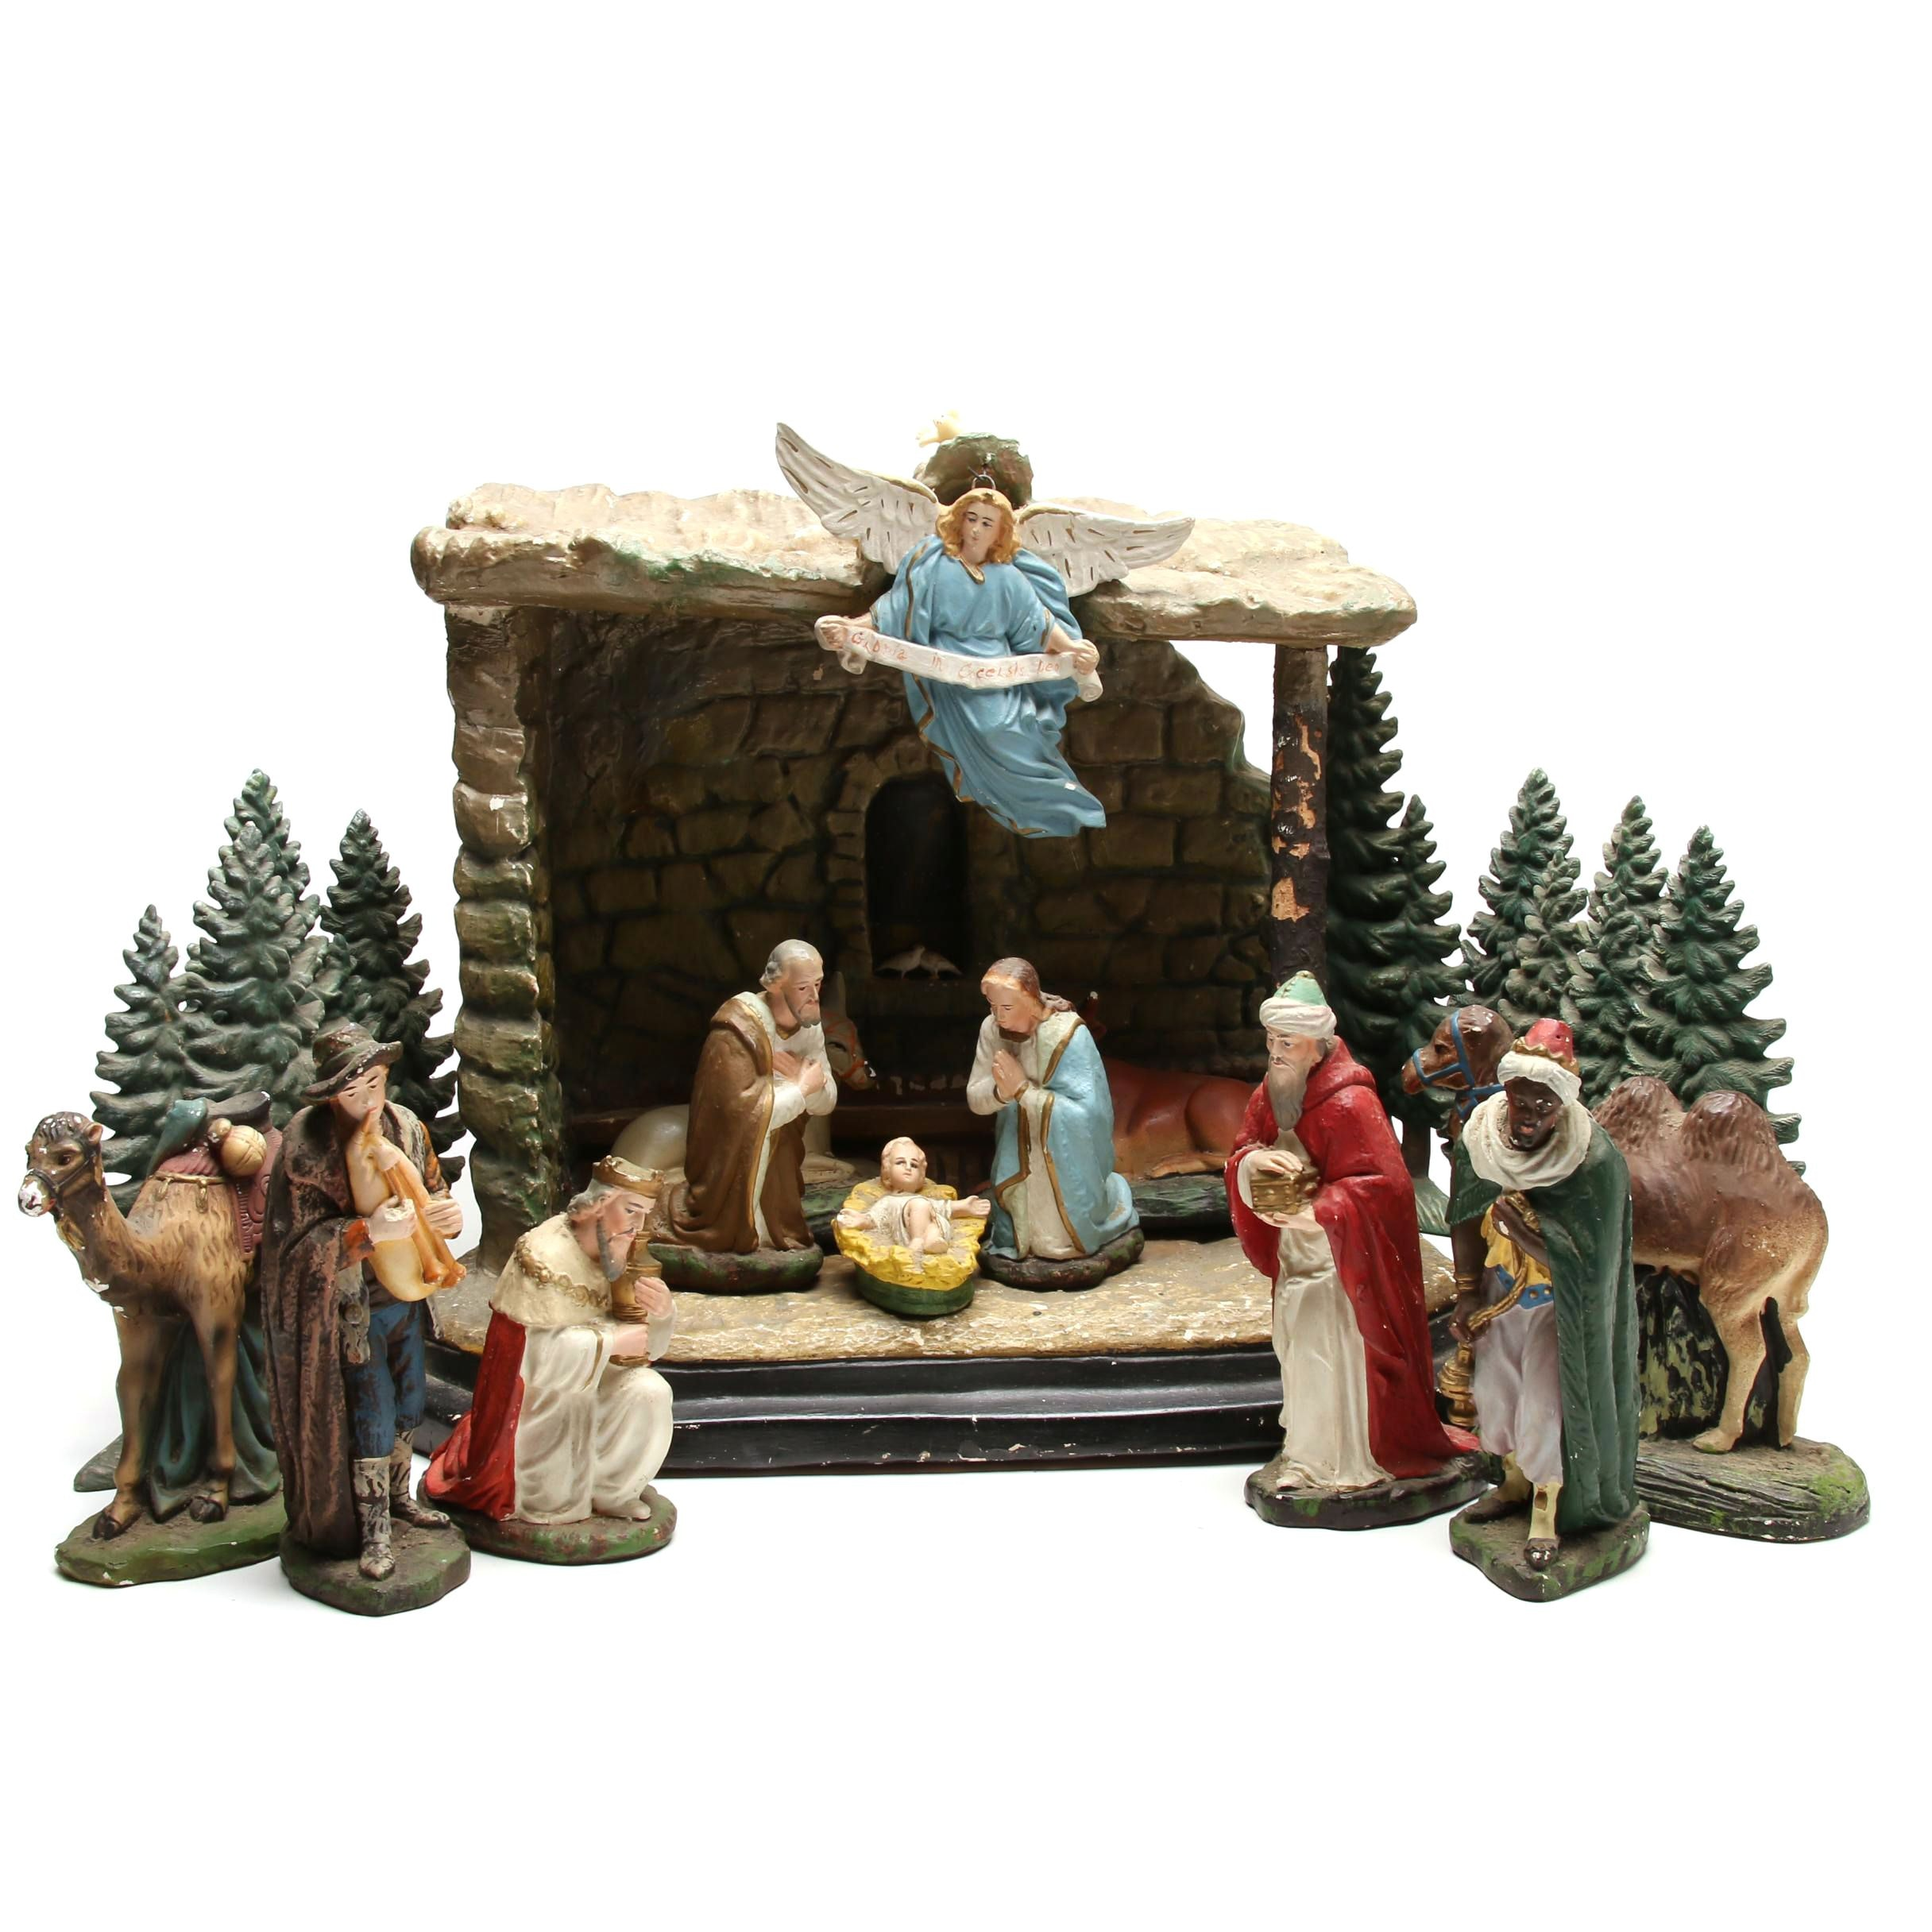 Electrified 1960s Era Christmas Nativity Display With Numerous Figurines